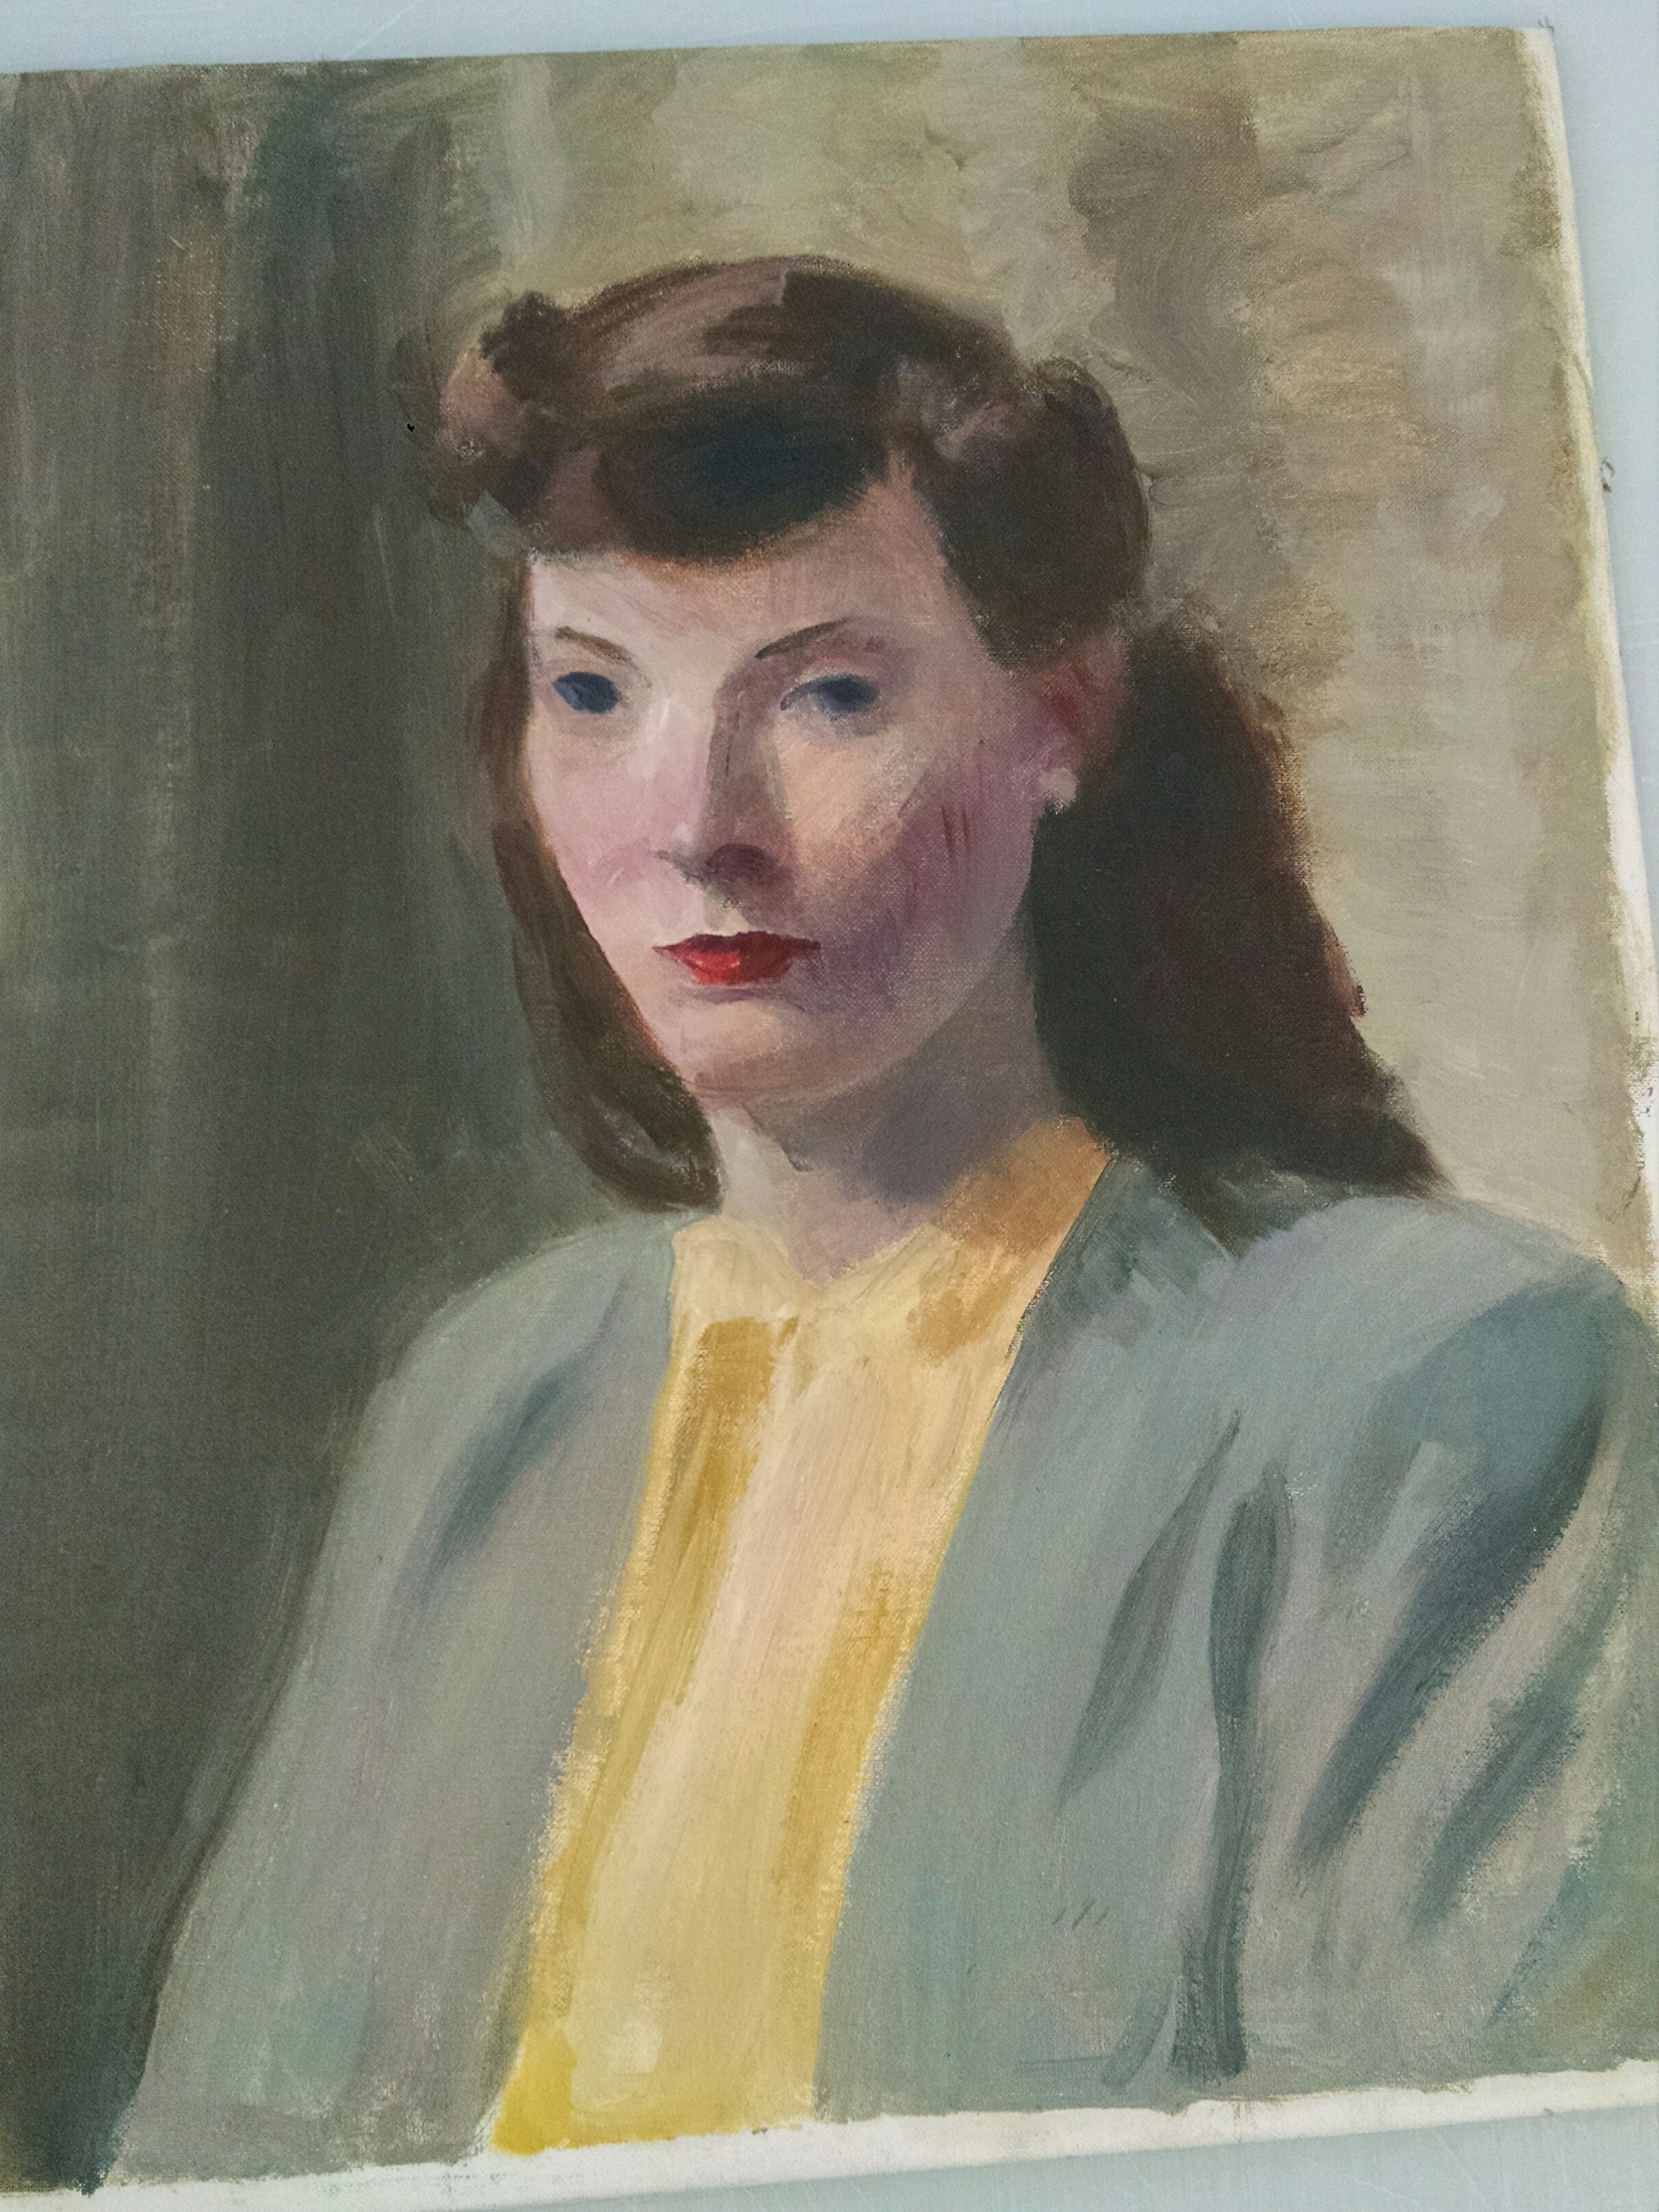 Found underneath another painting by artist Edith Barry was this unfinished portrait. The painting was discovered when the frame of the other artwork was removed. SUBMITTED PHOTO